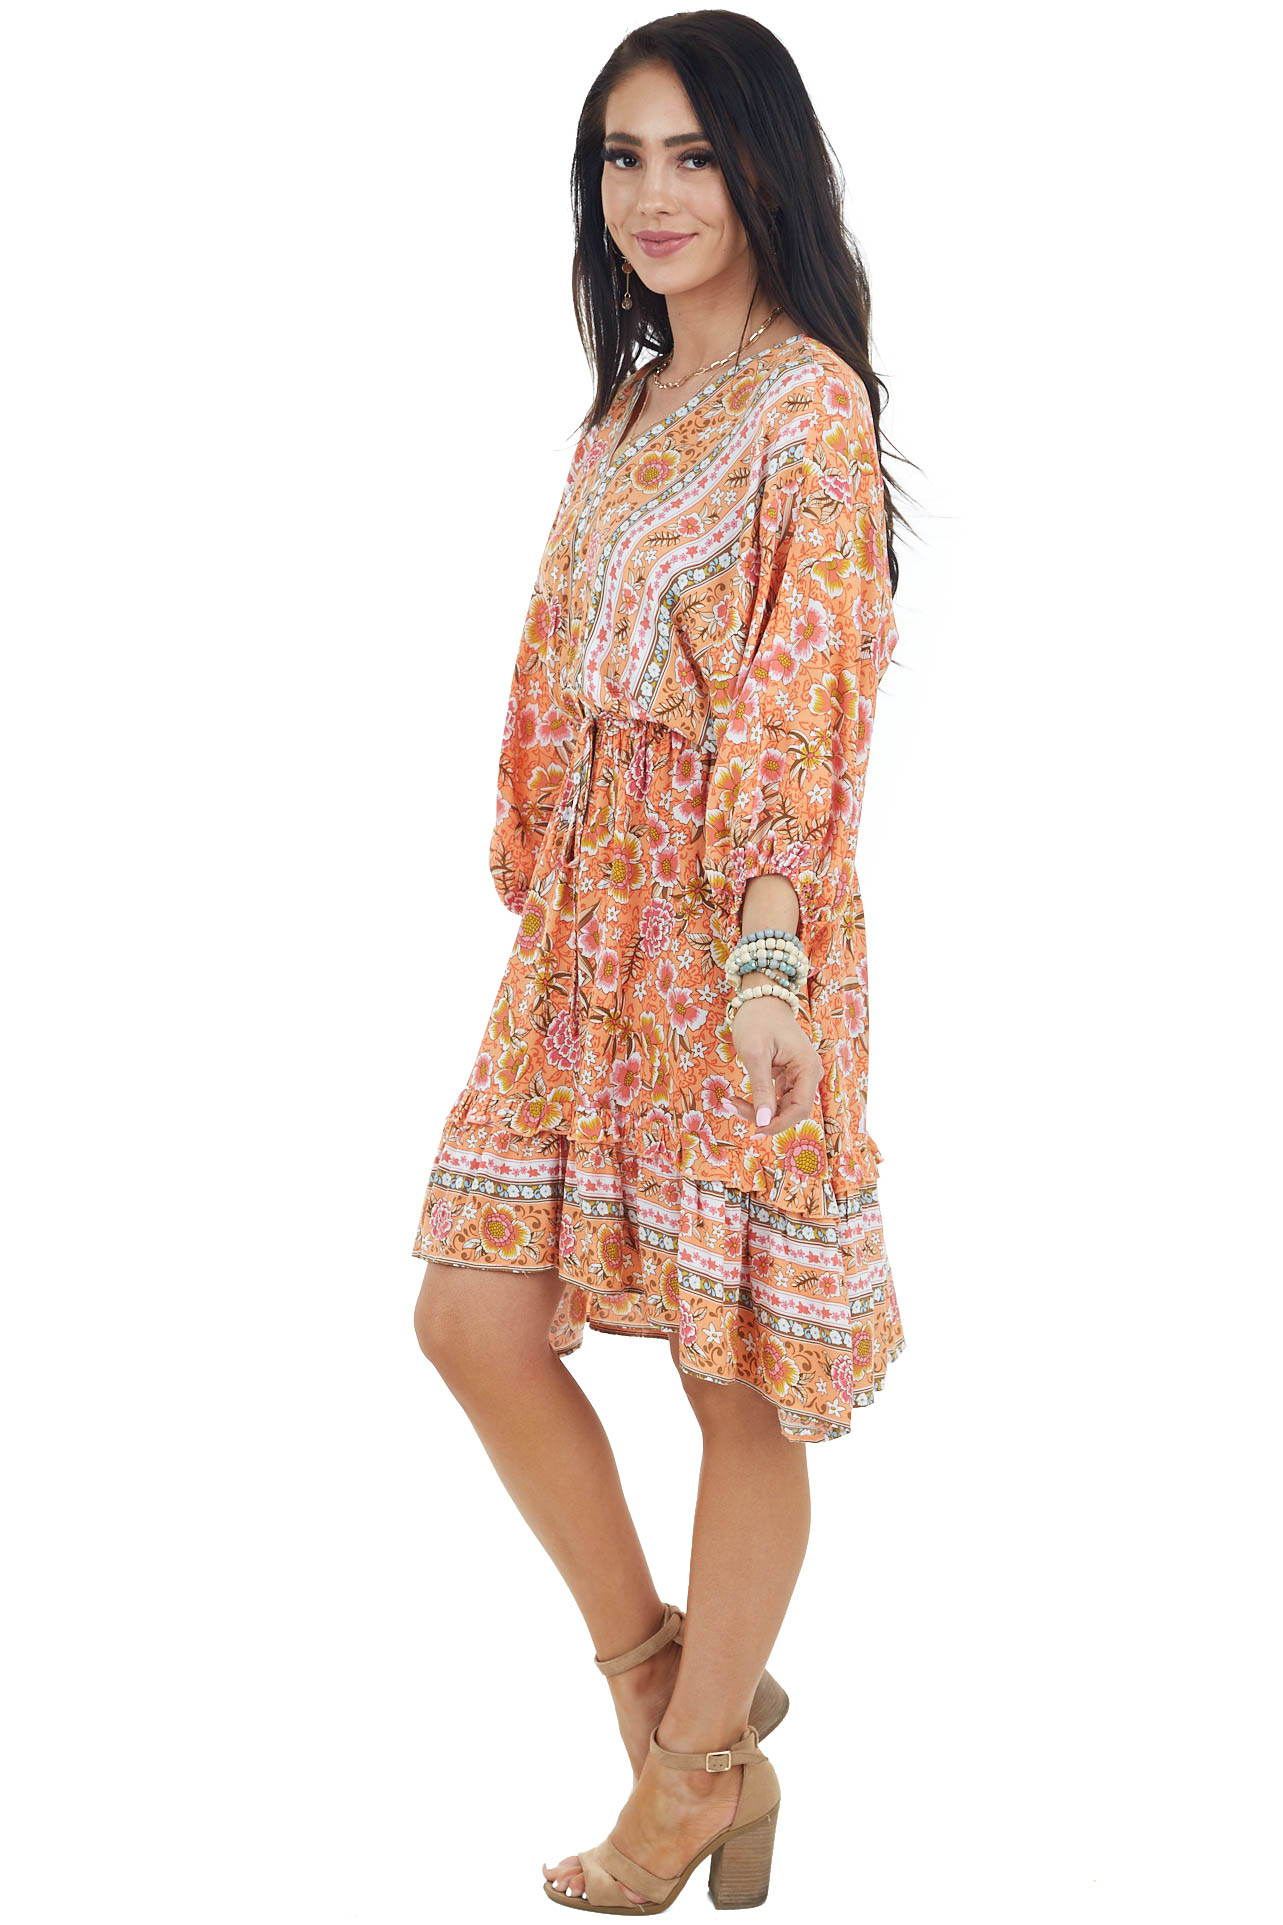 Tangerine Floral Print Dress with 3/4 Length Bubble Sleeves